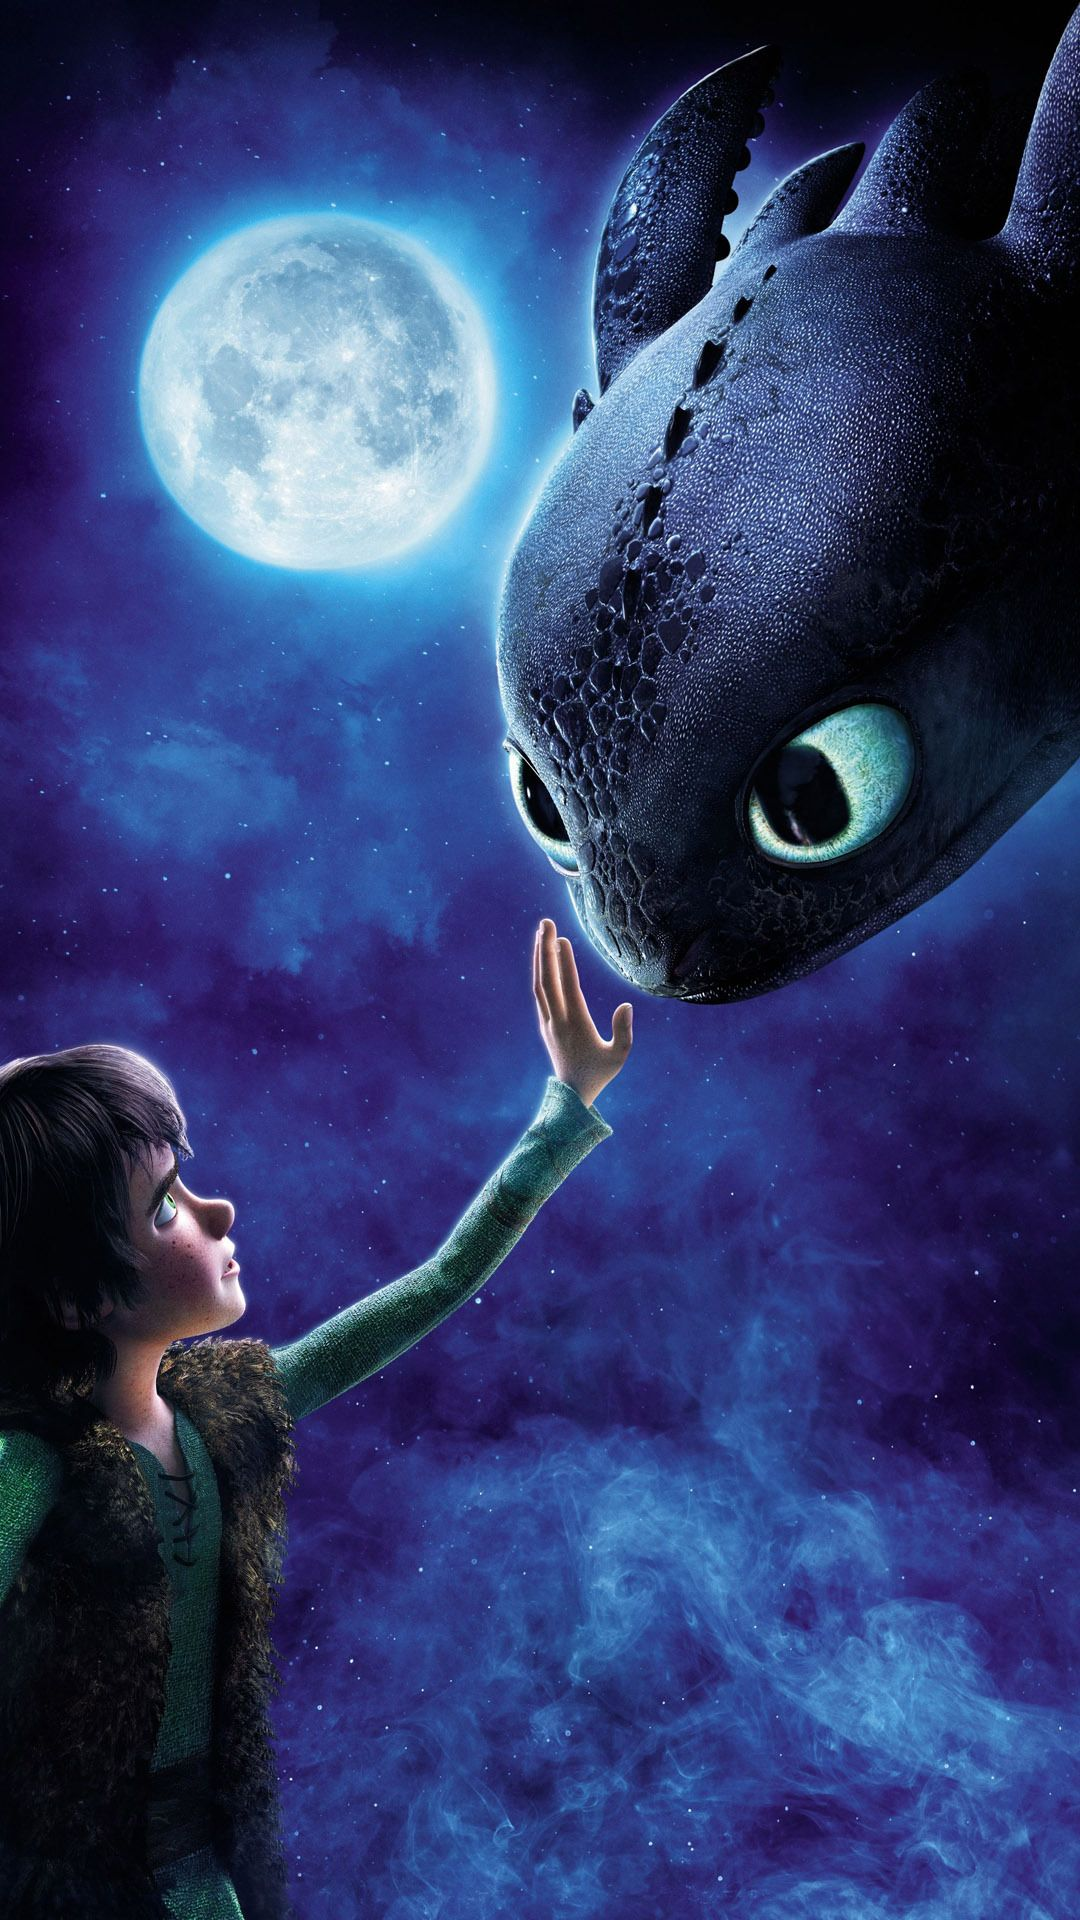 How to train your dragon mobile wallpaper 10591 fairies fantasy how to train your dragon mobile wallpaper 10591 ccuart Image collections